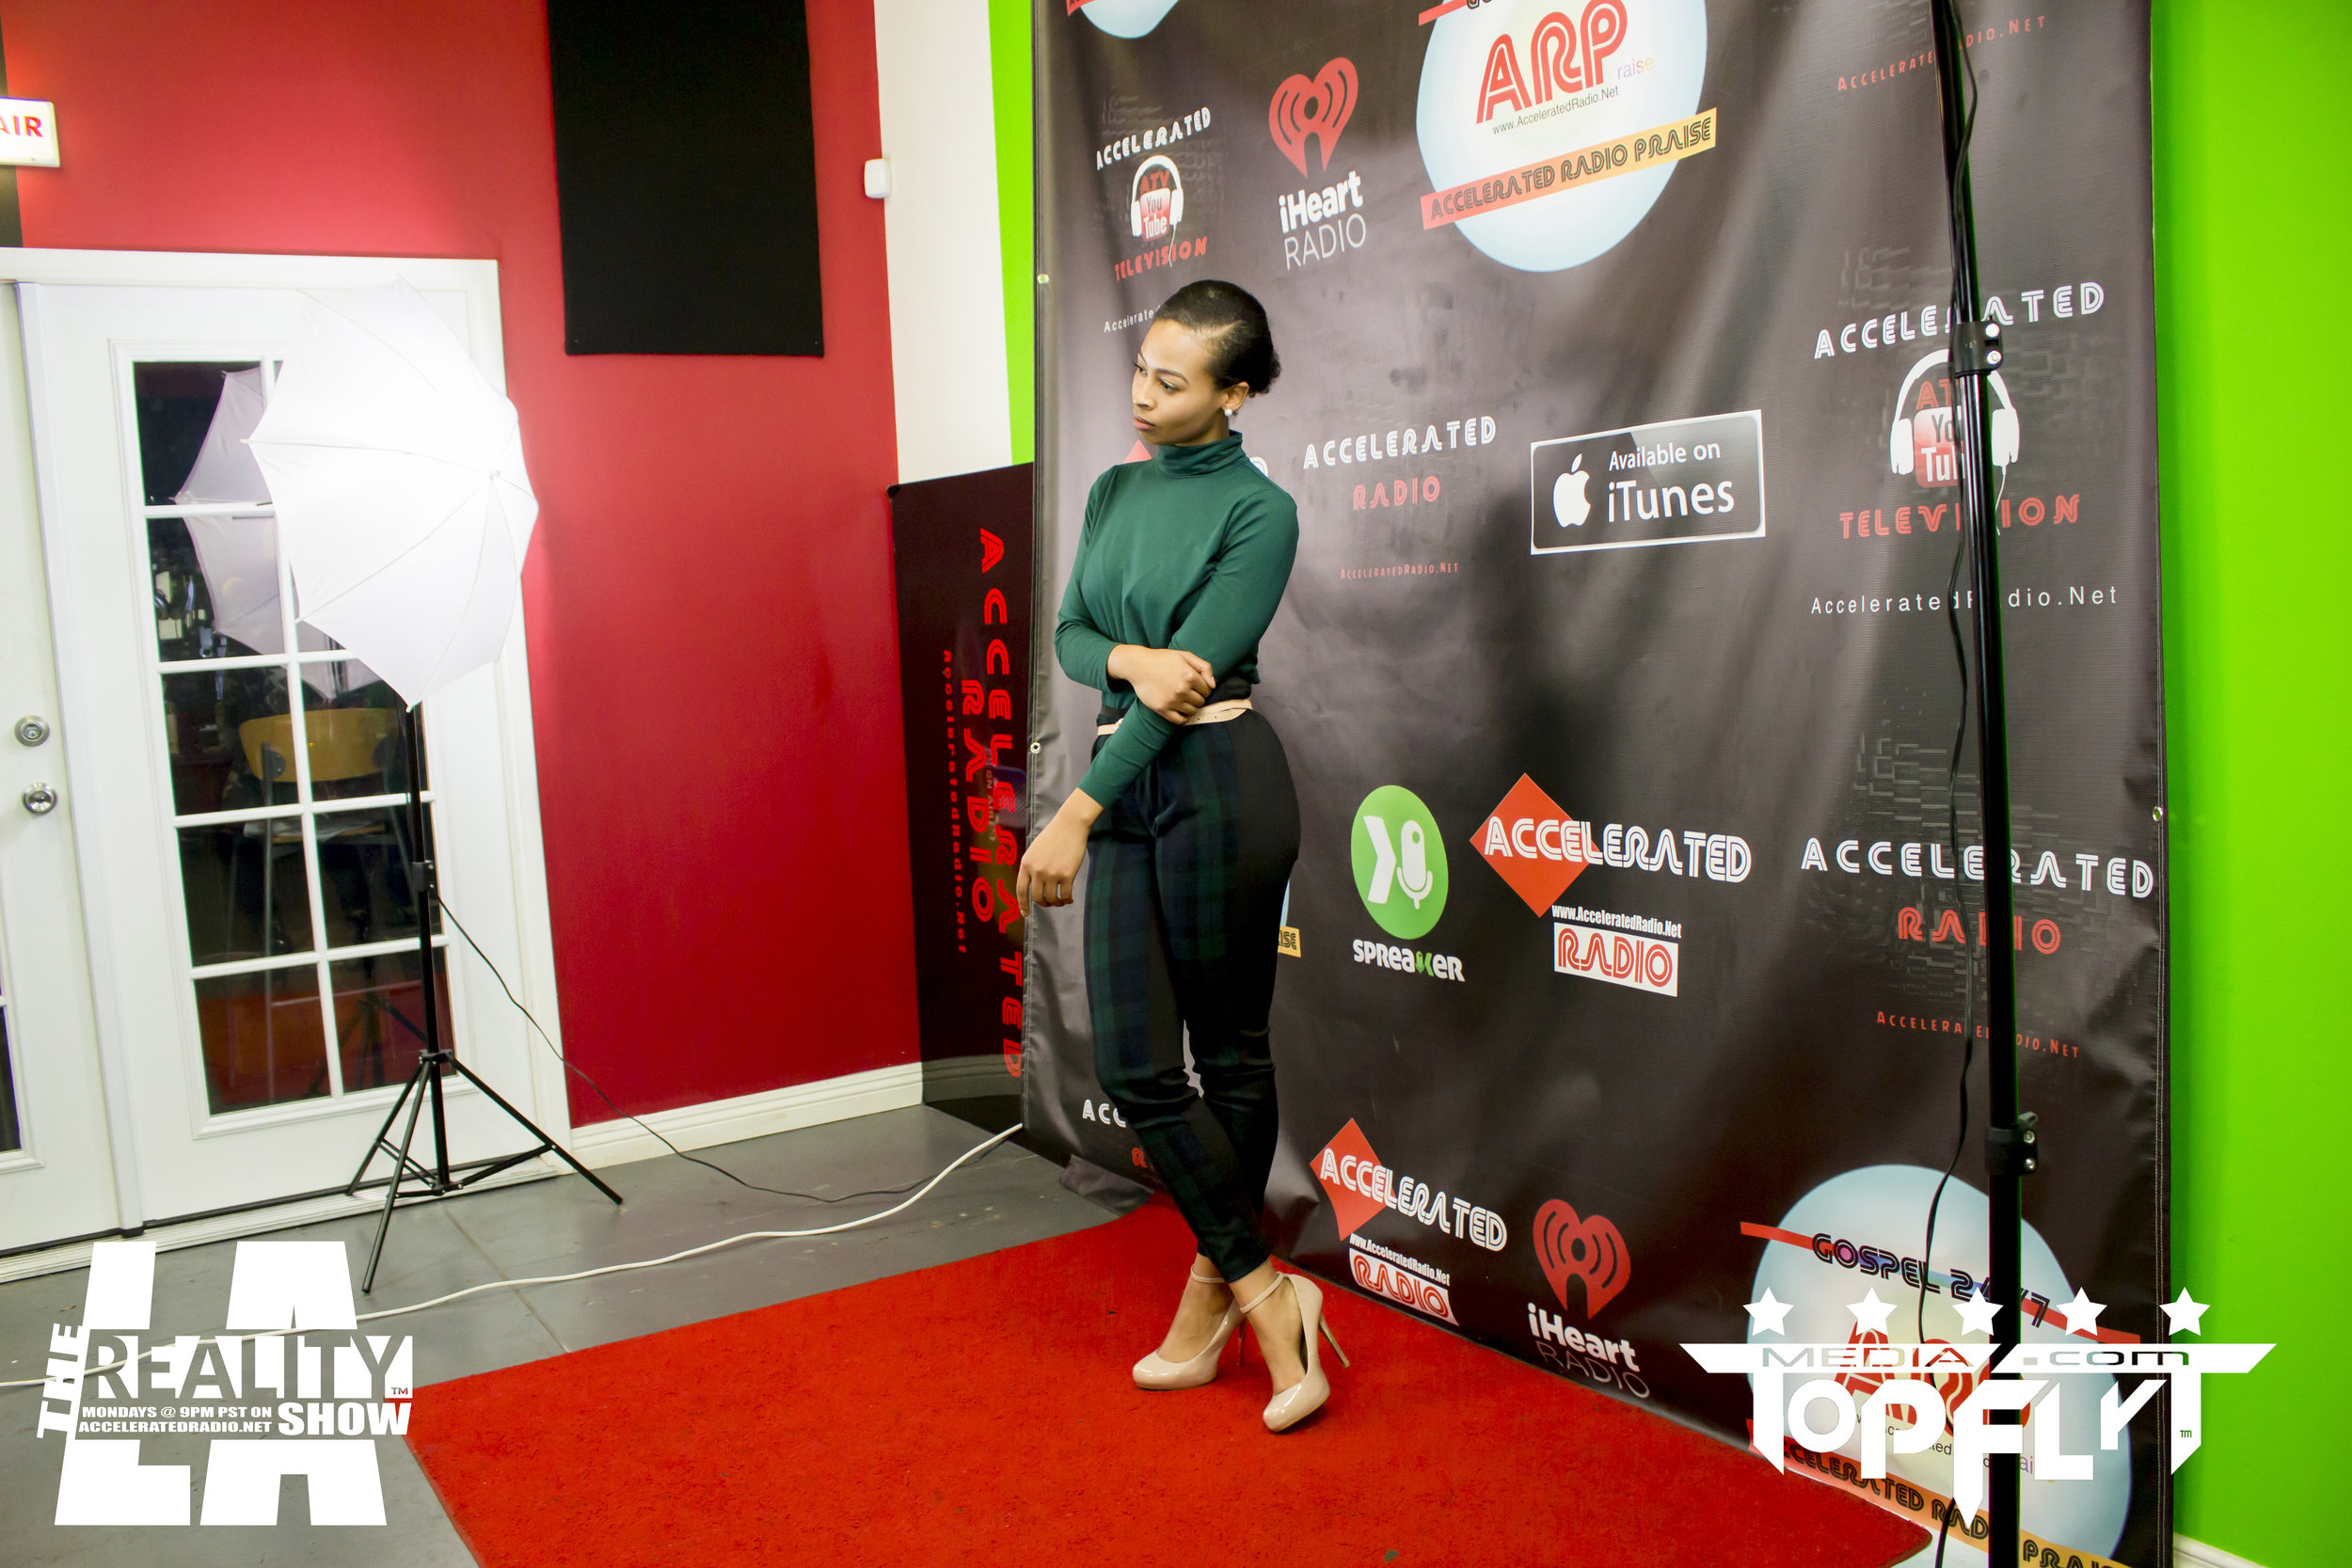 The Reality Show LA ft. Cast of FunnyMarriedStuff And Raquel Harris - 01-16-17_47.jpg